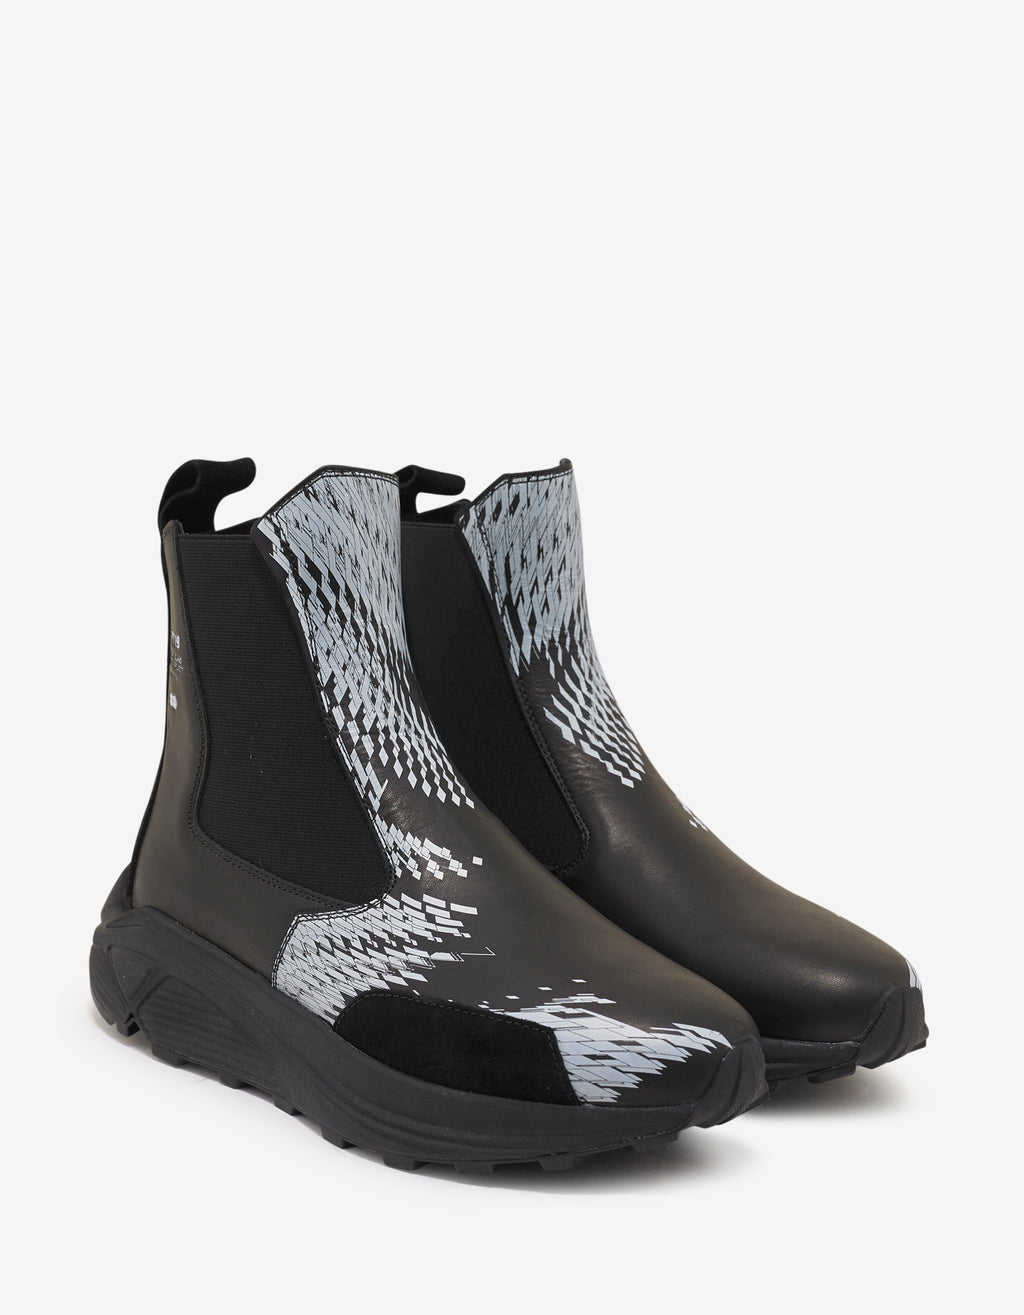 Black Graphic Print Leather Boots